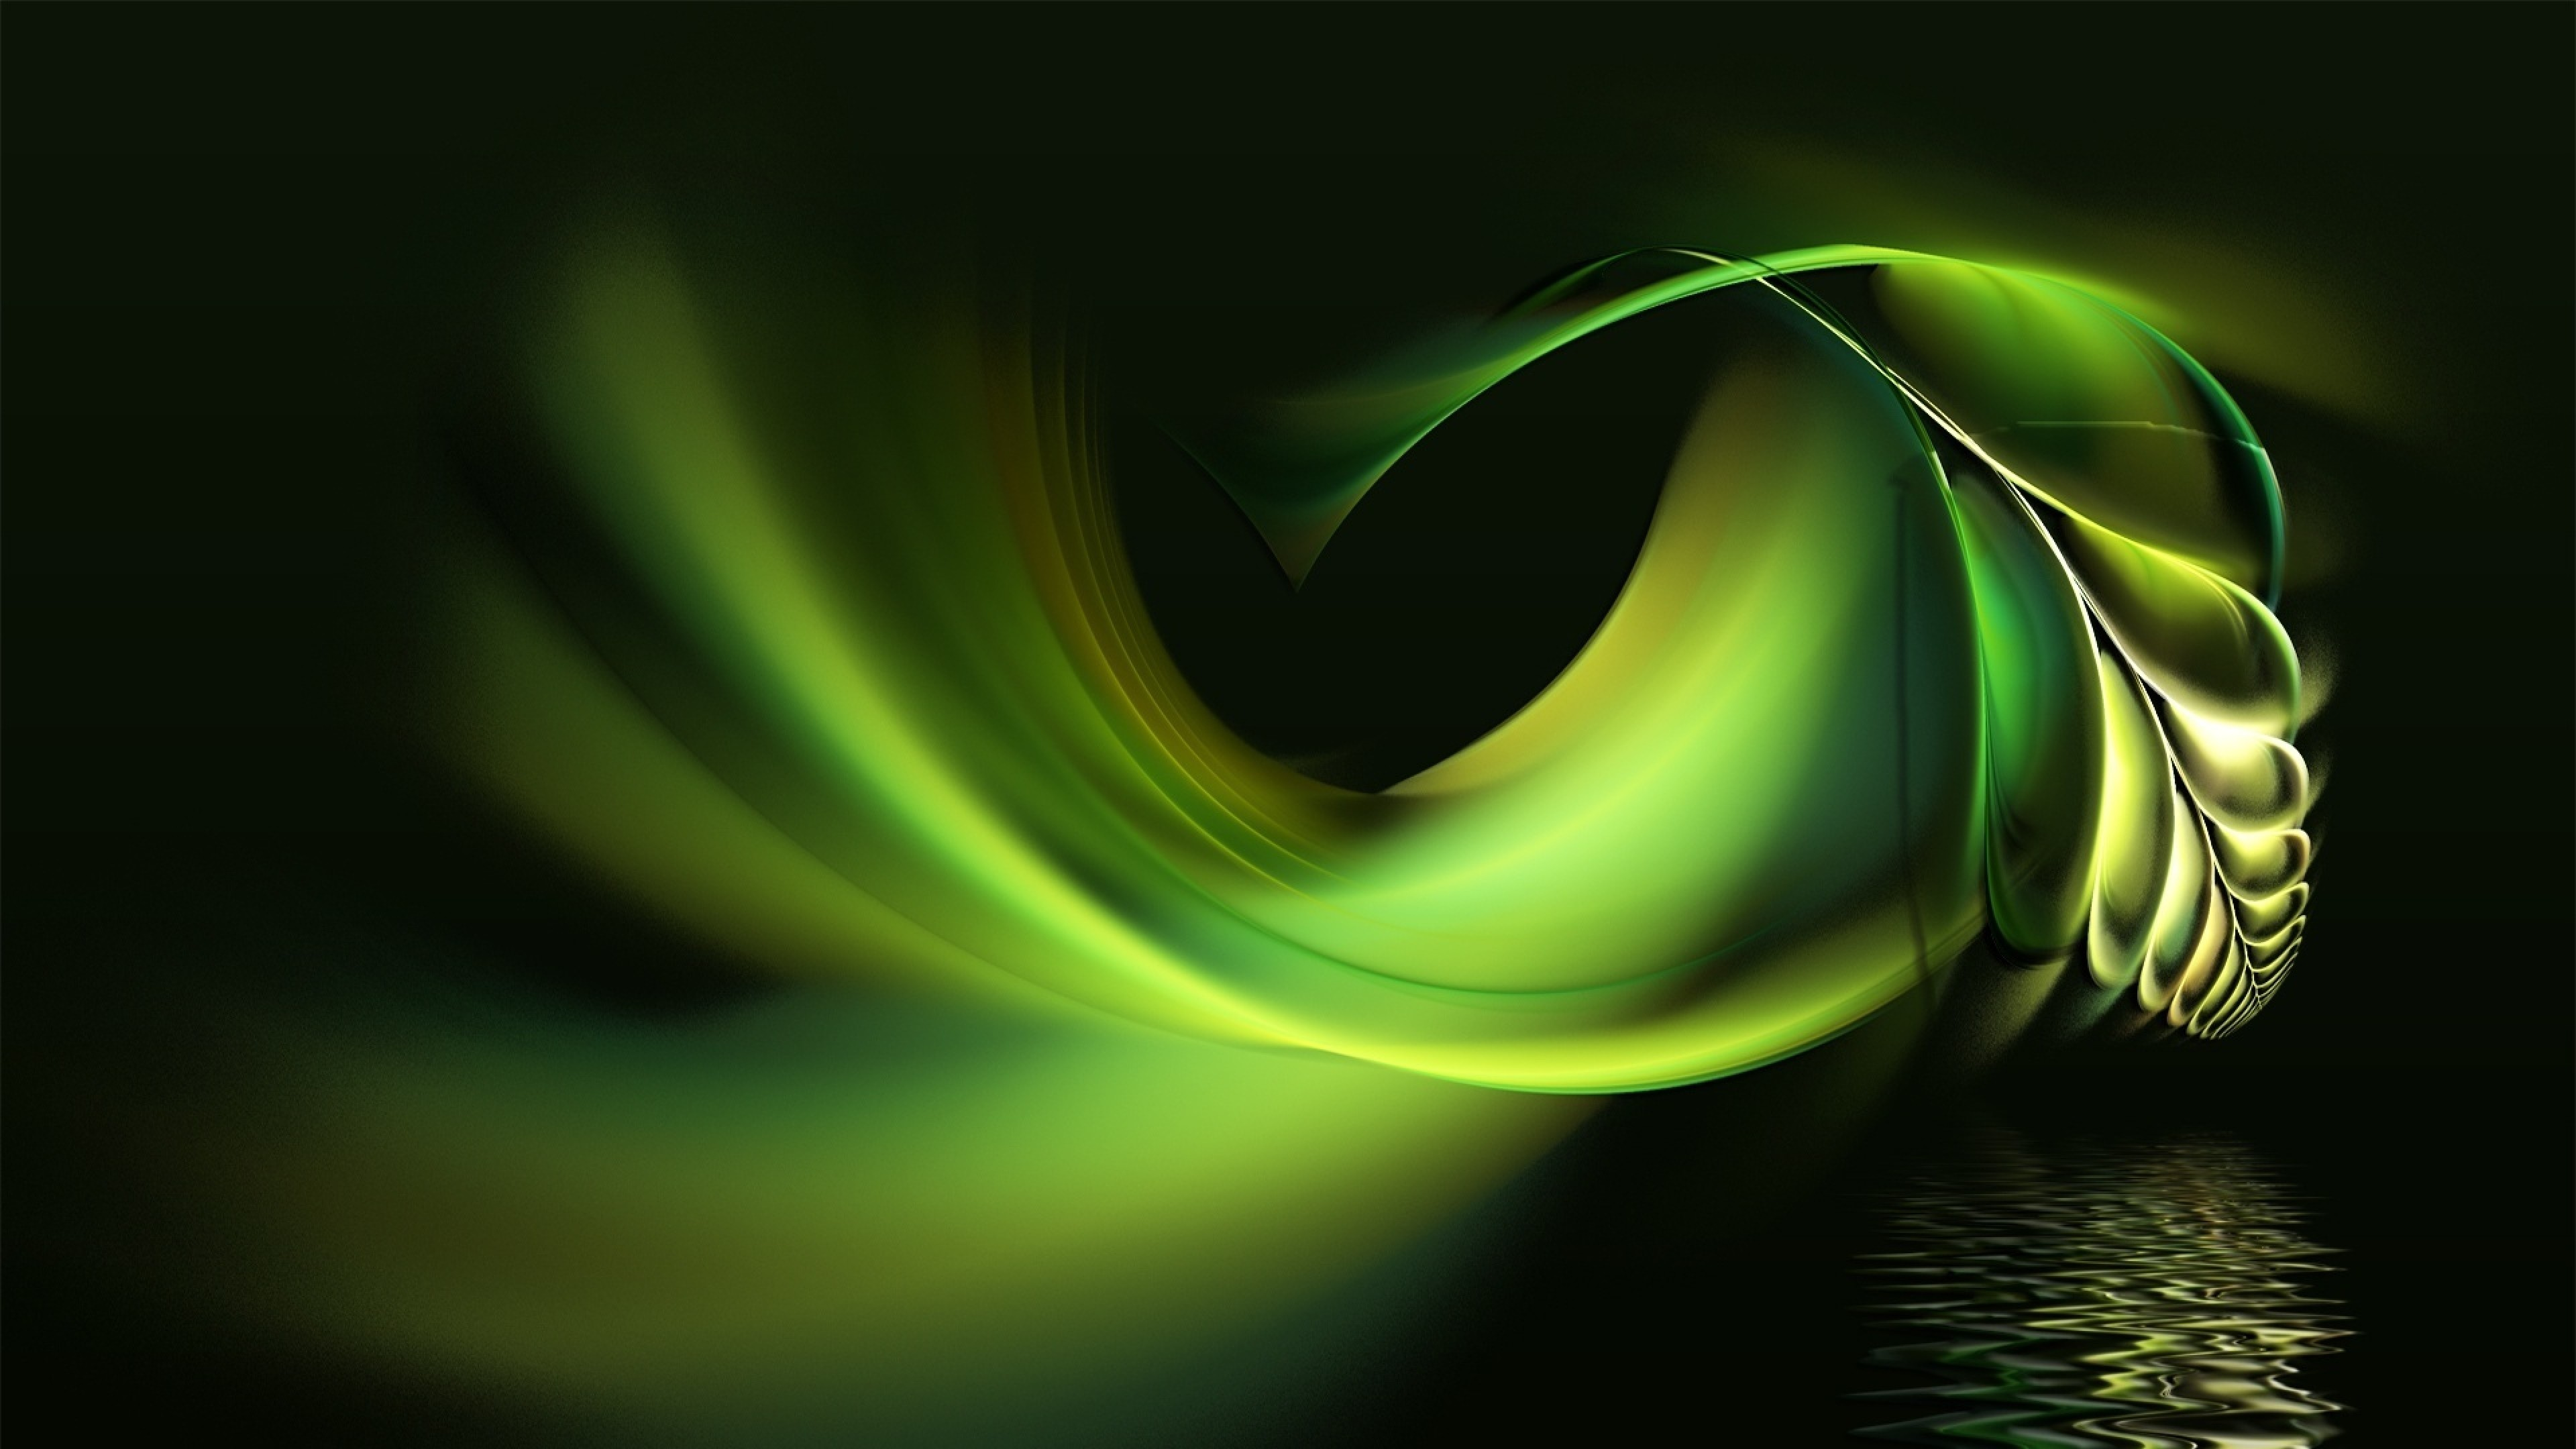 3840x2160 Preview wallpaper black, white, abstract, pen, water, green